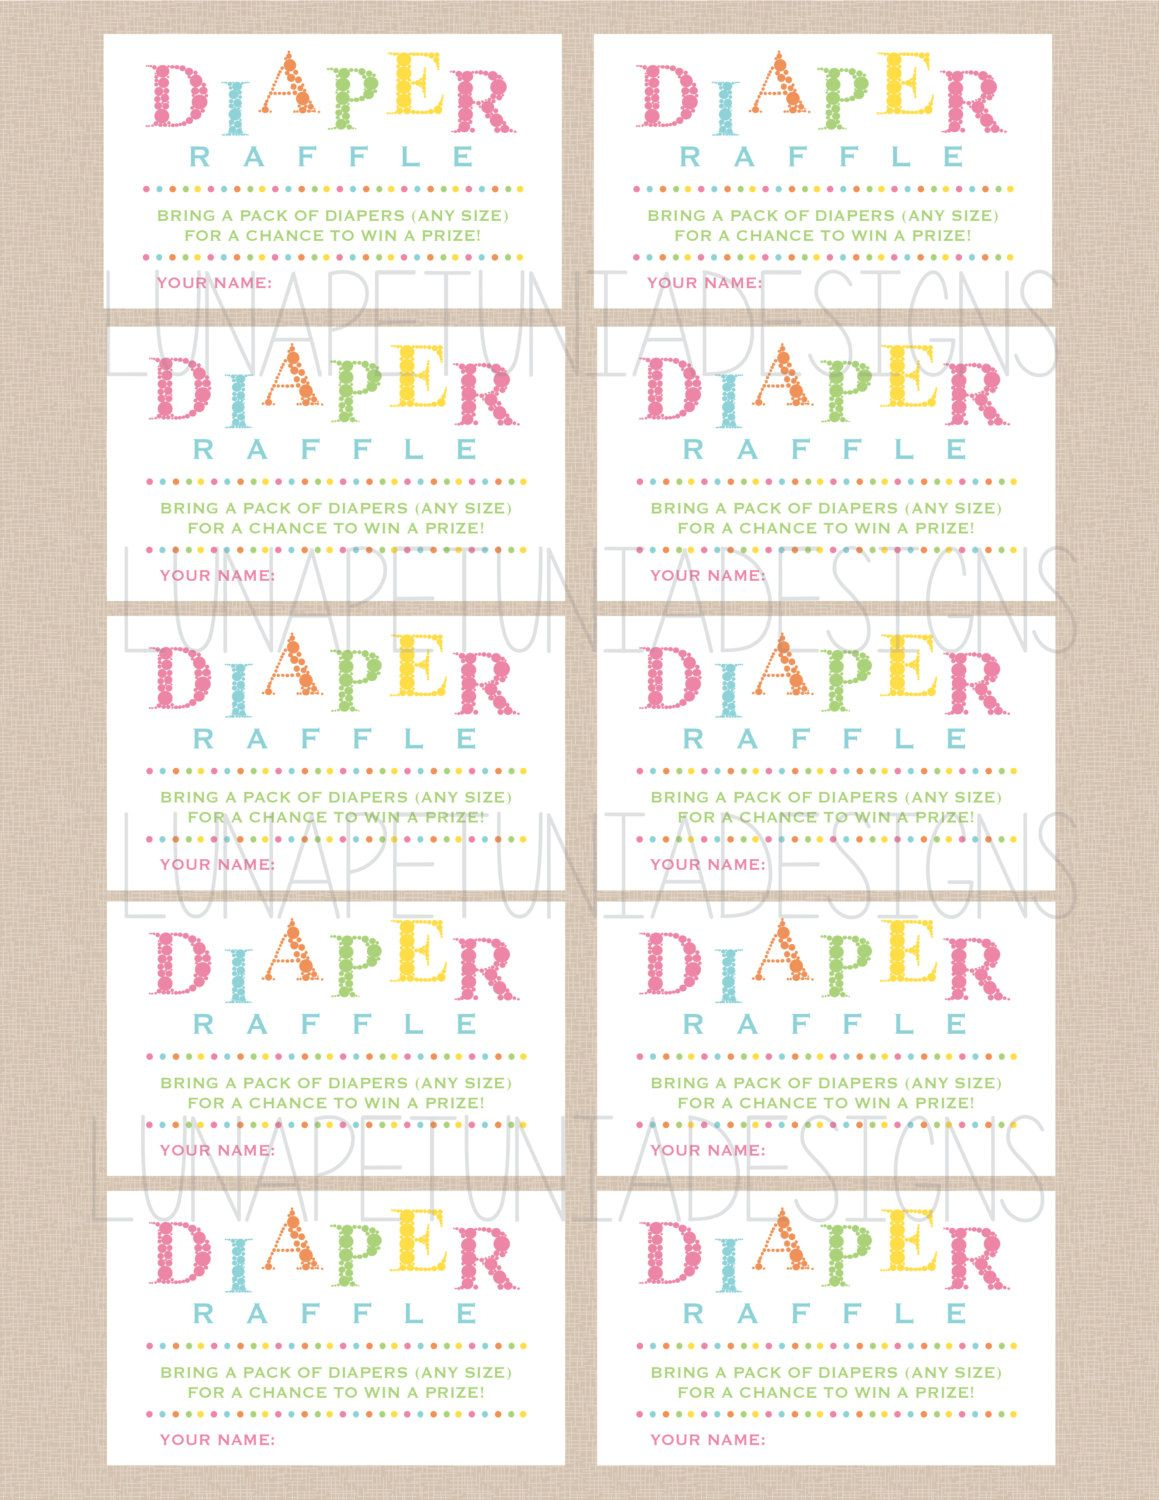 003 Diaper Raffle Tickets Template ~ Ulyssesroom - Free Printable Diaper Raffle Ticket Template